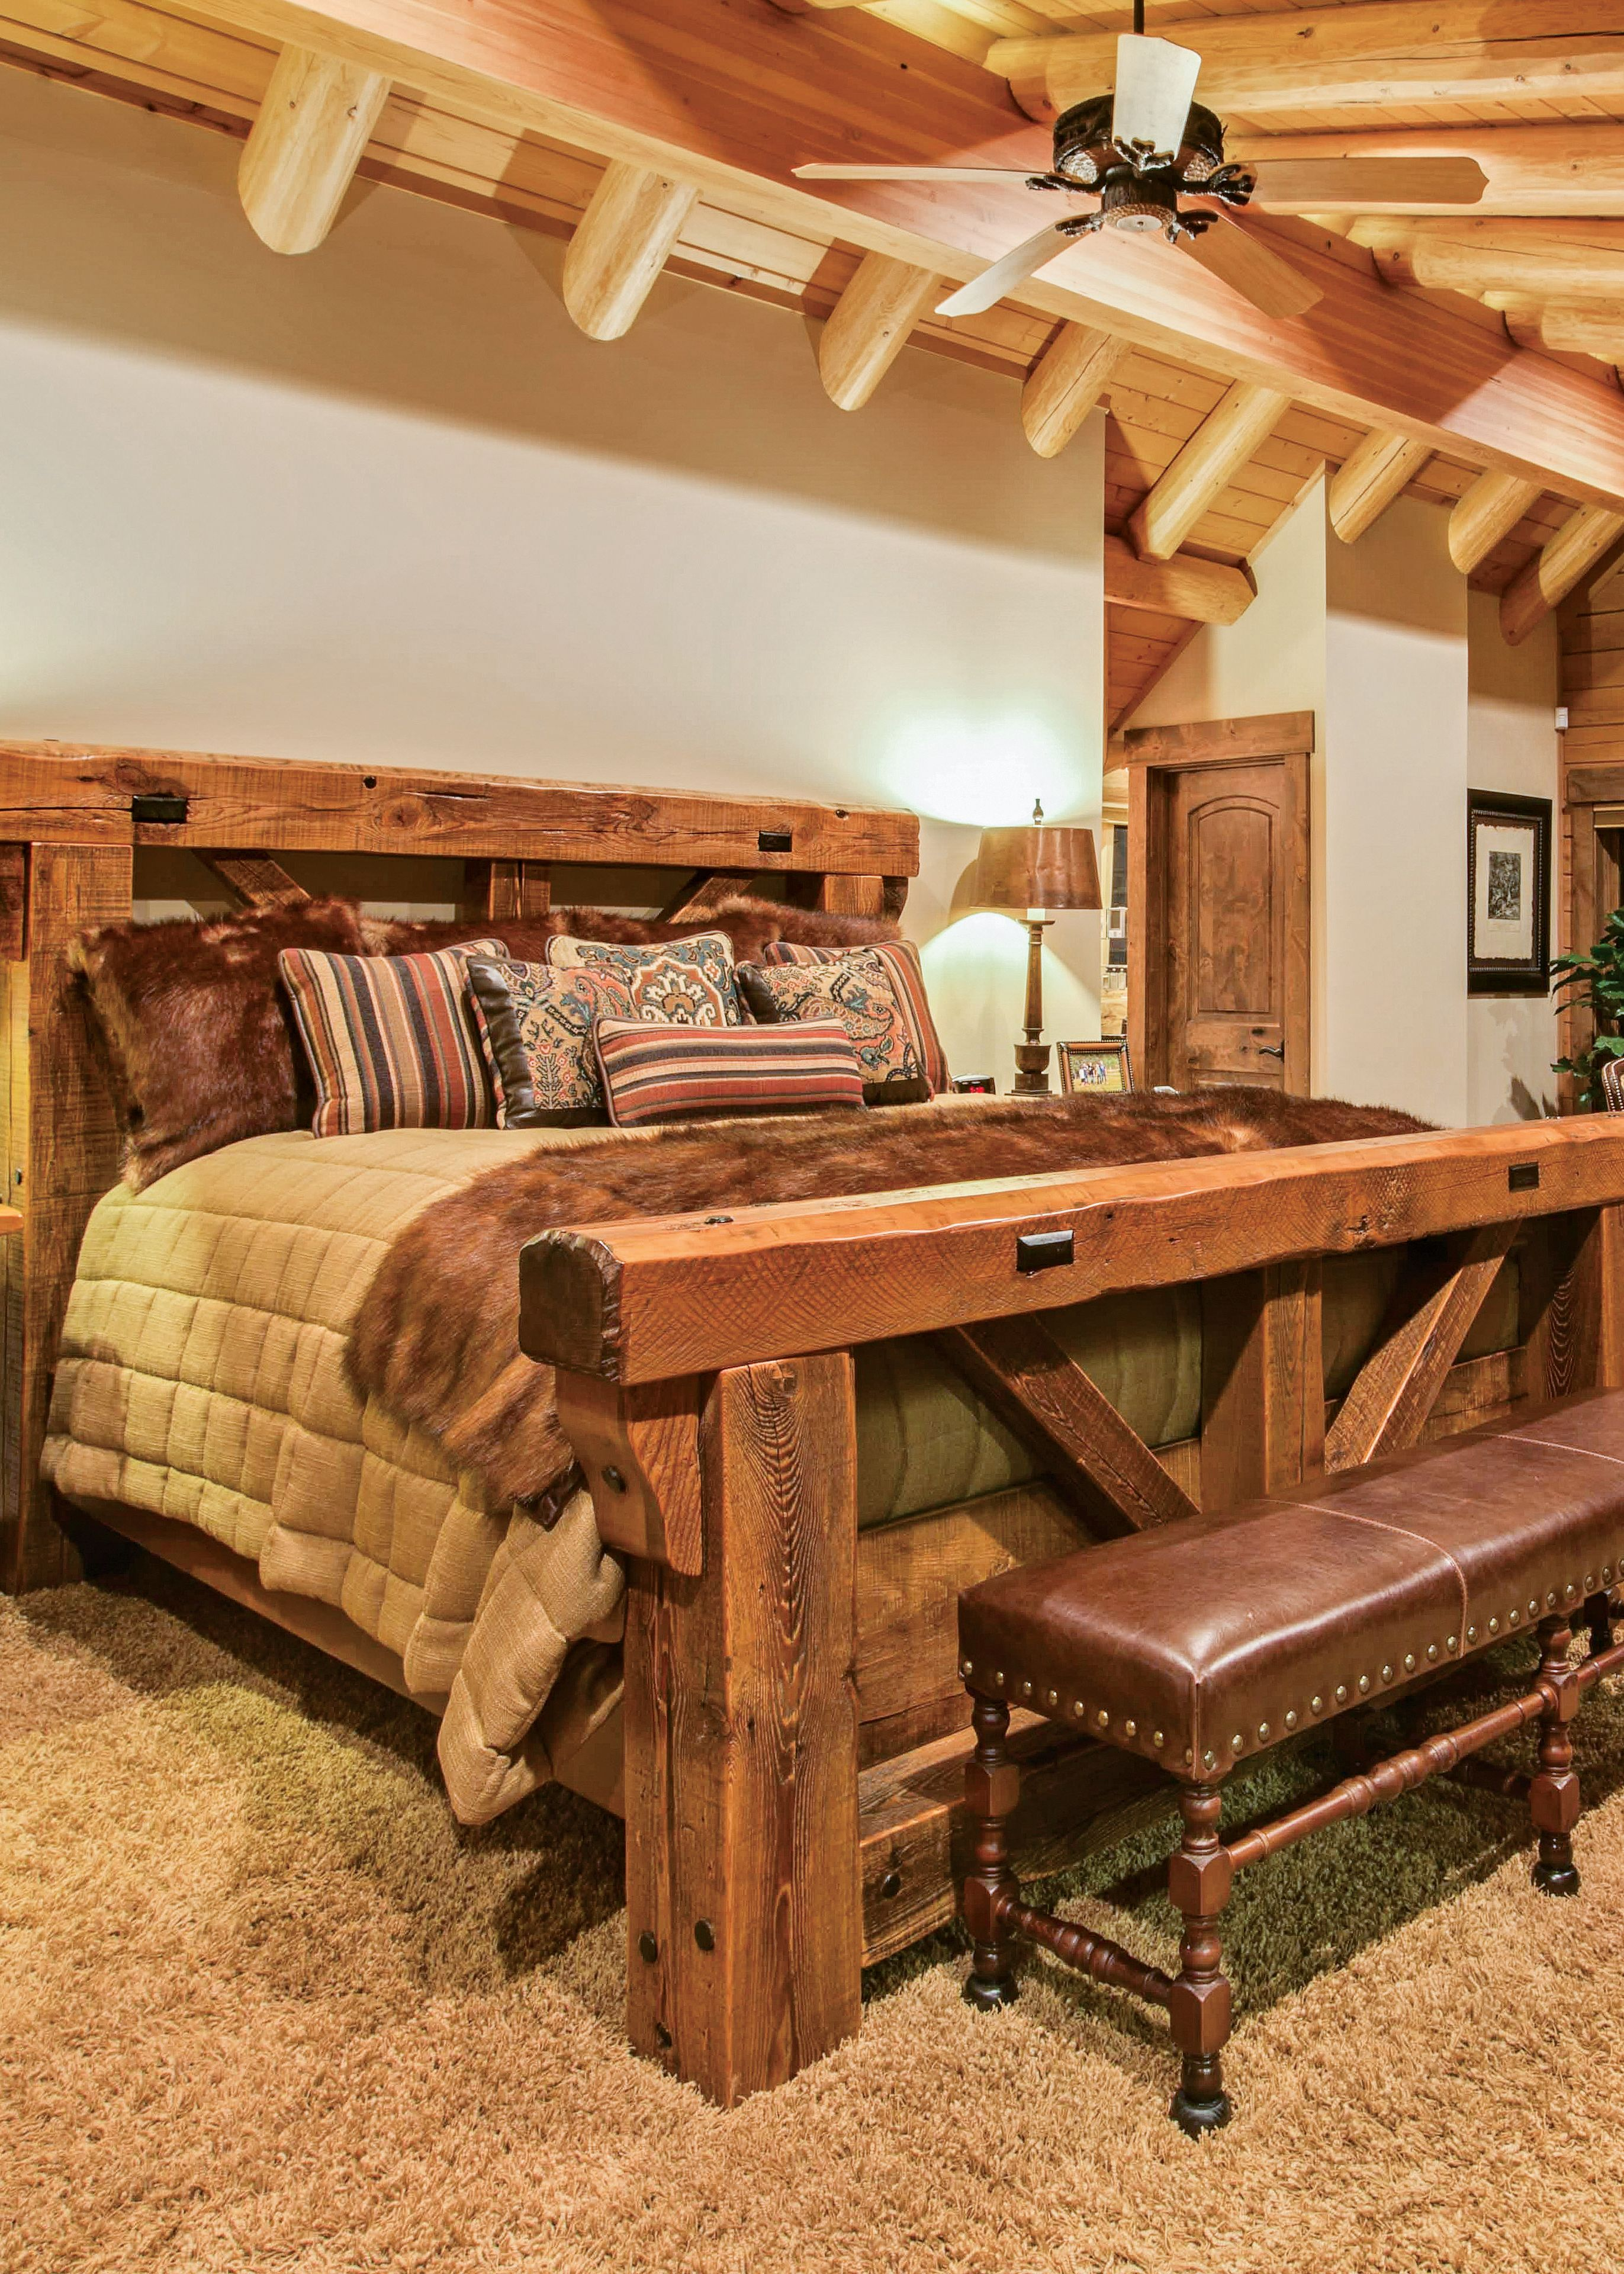 These Five Log And Timber Frame Bedrooms Will Guarantee A Restful Sleep Rustic Bedroom Furniture Log Home Bedroom Log Bedroom Furniture